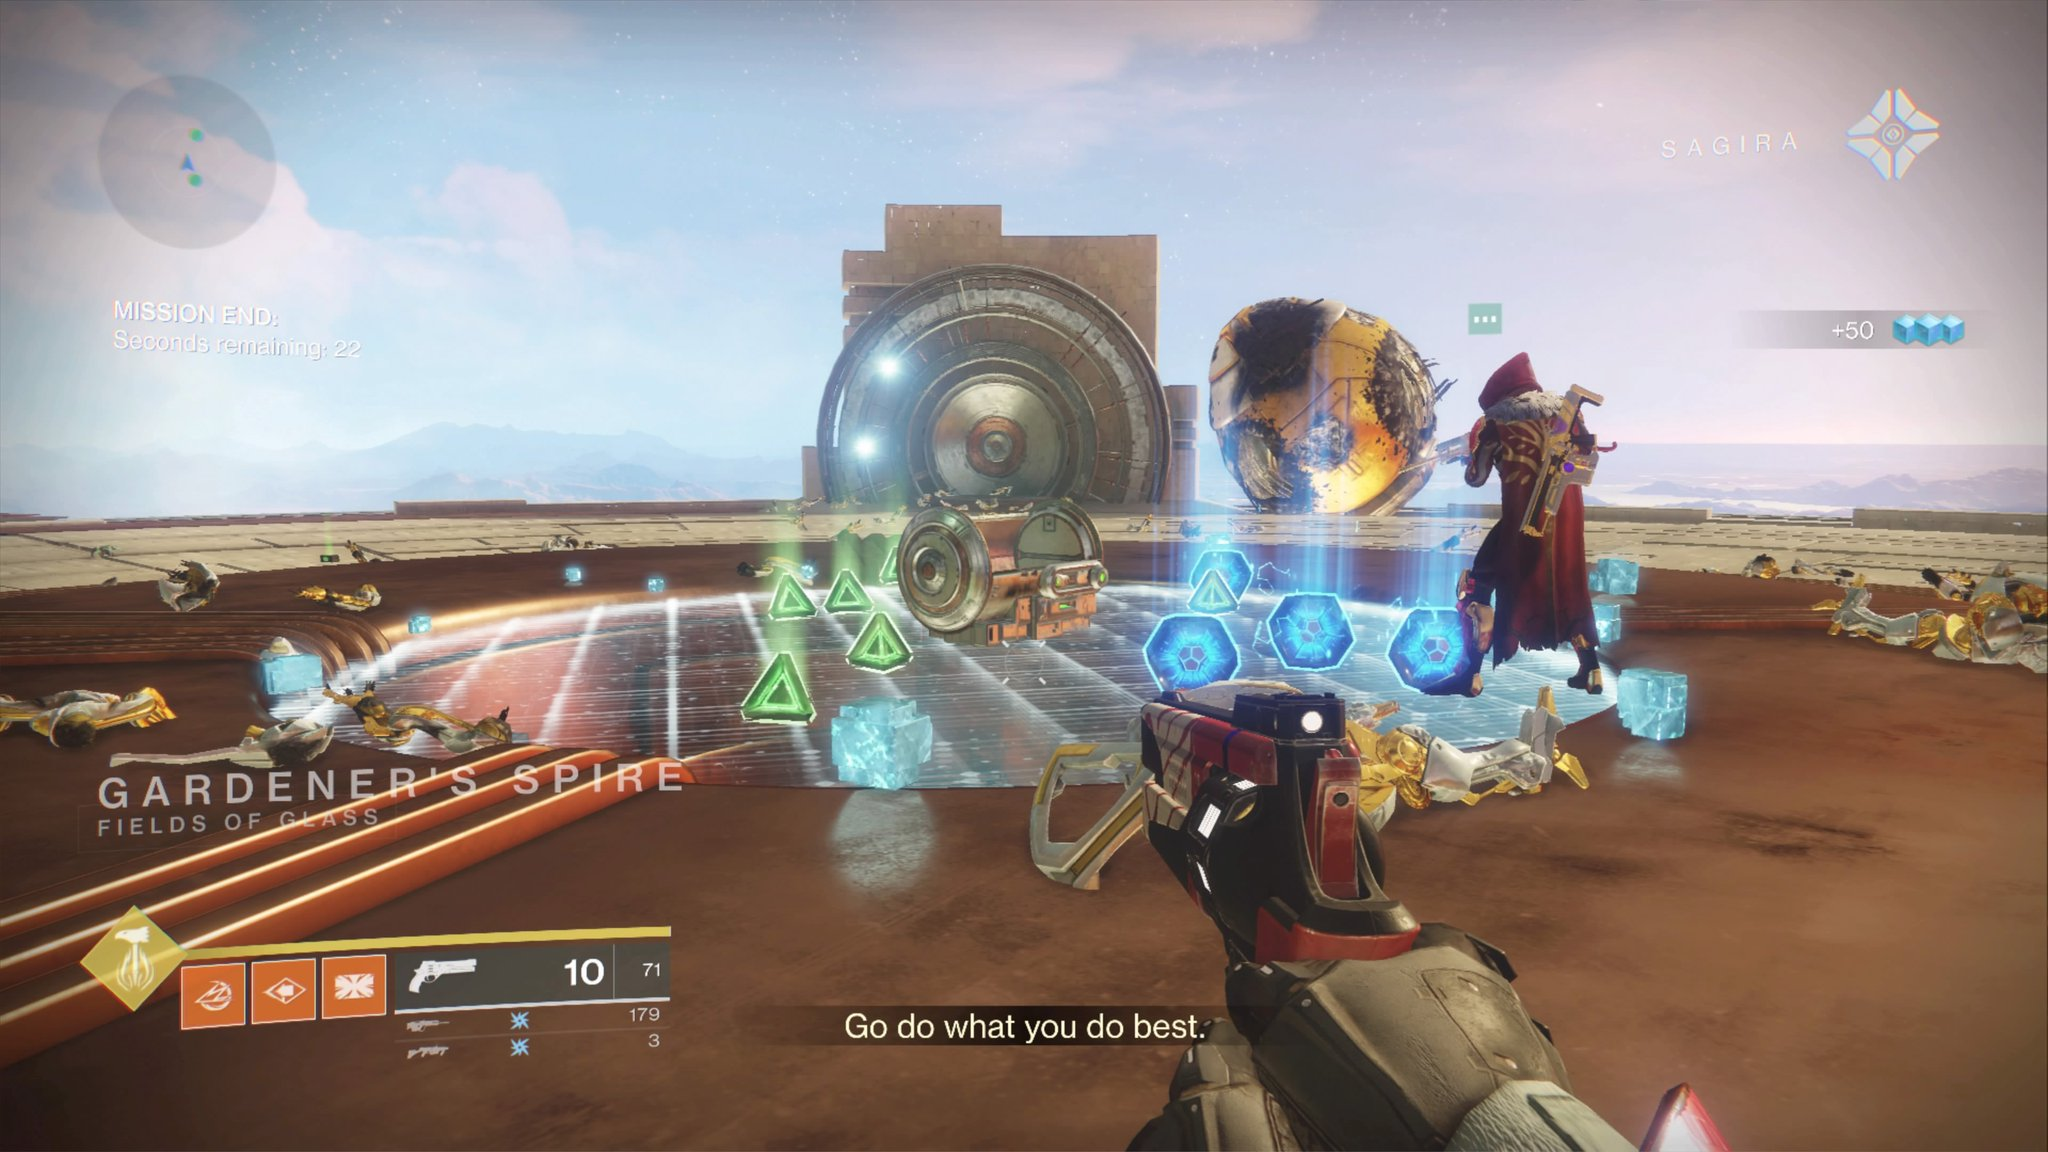 Destiny 2 A Garden World Strike - How to Complete the Heroic